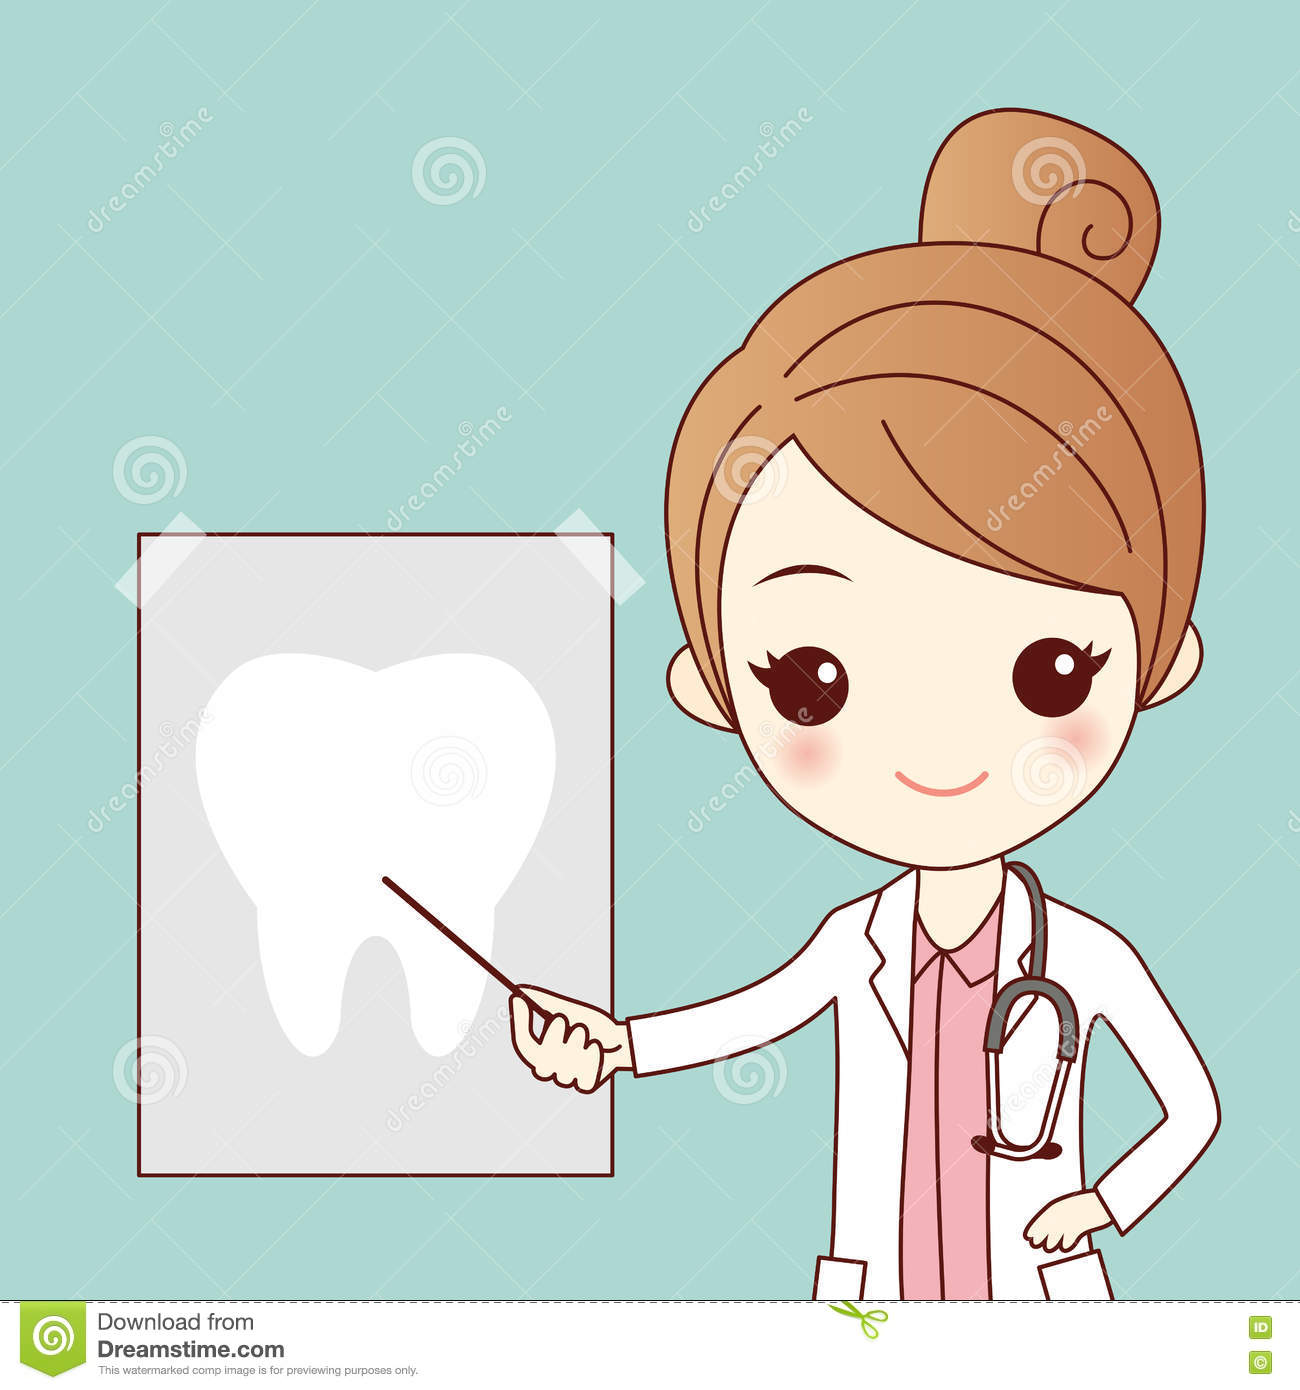 cartoon dentist tooth ray cute doctor great health dental care concept 77895785